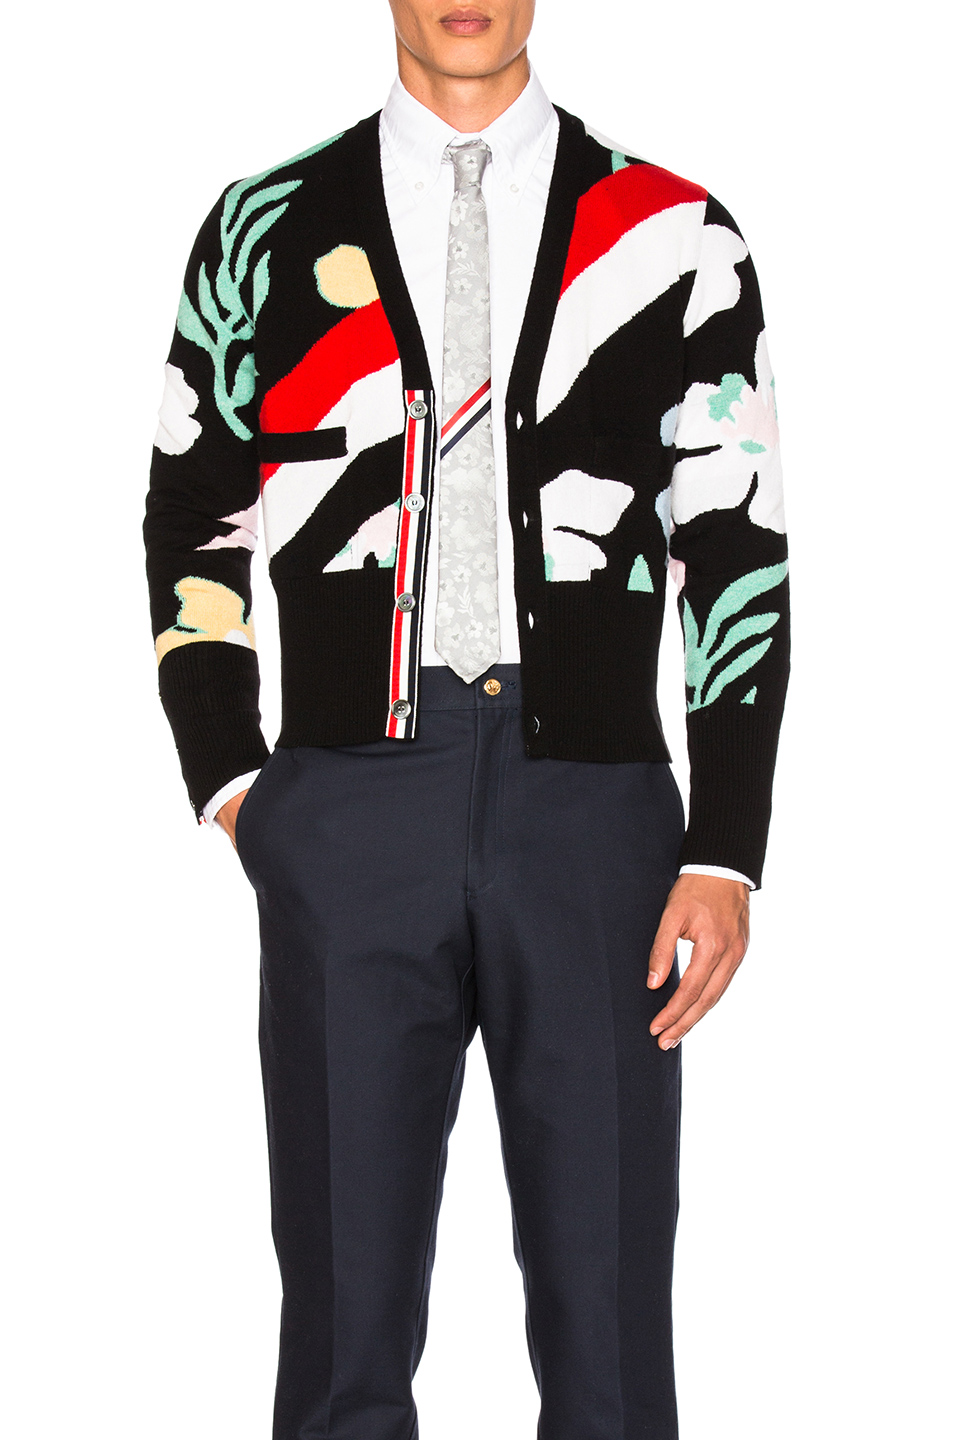 Thom Browne Floral Intarsia Cashmere Cardigan in Black,Abstract,Floral